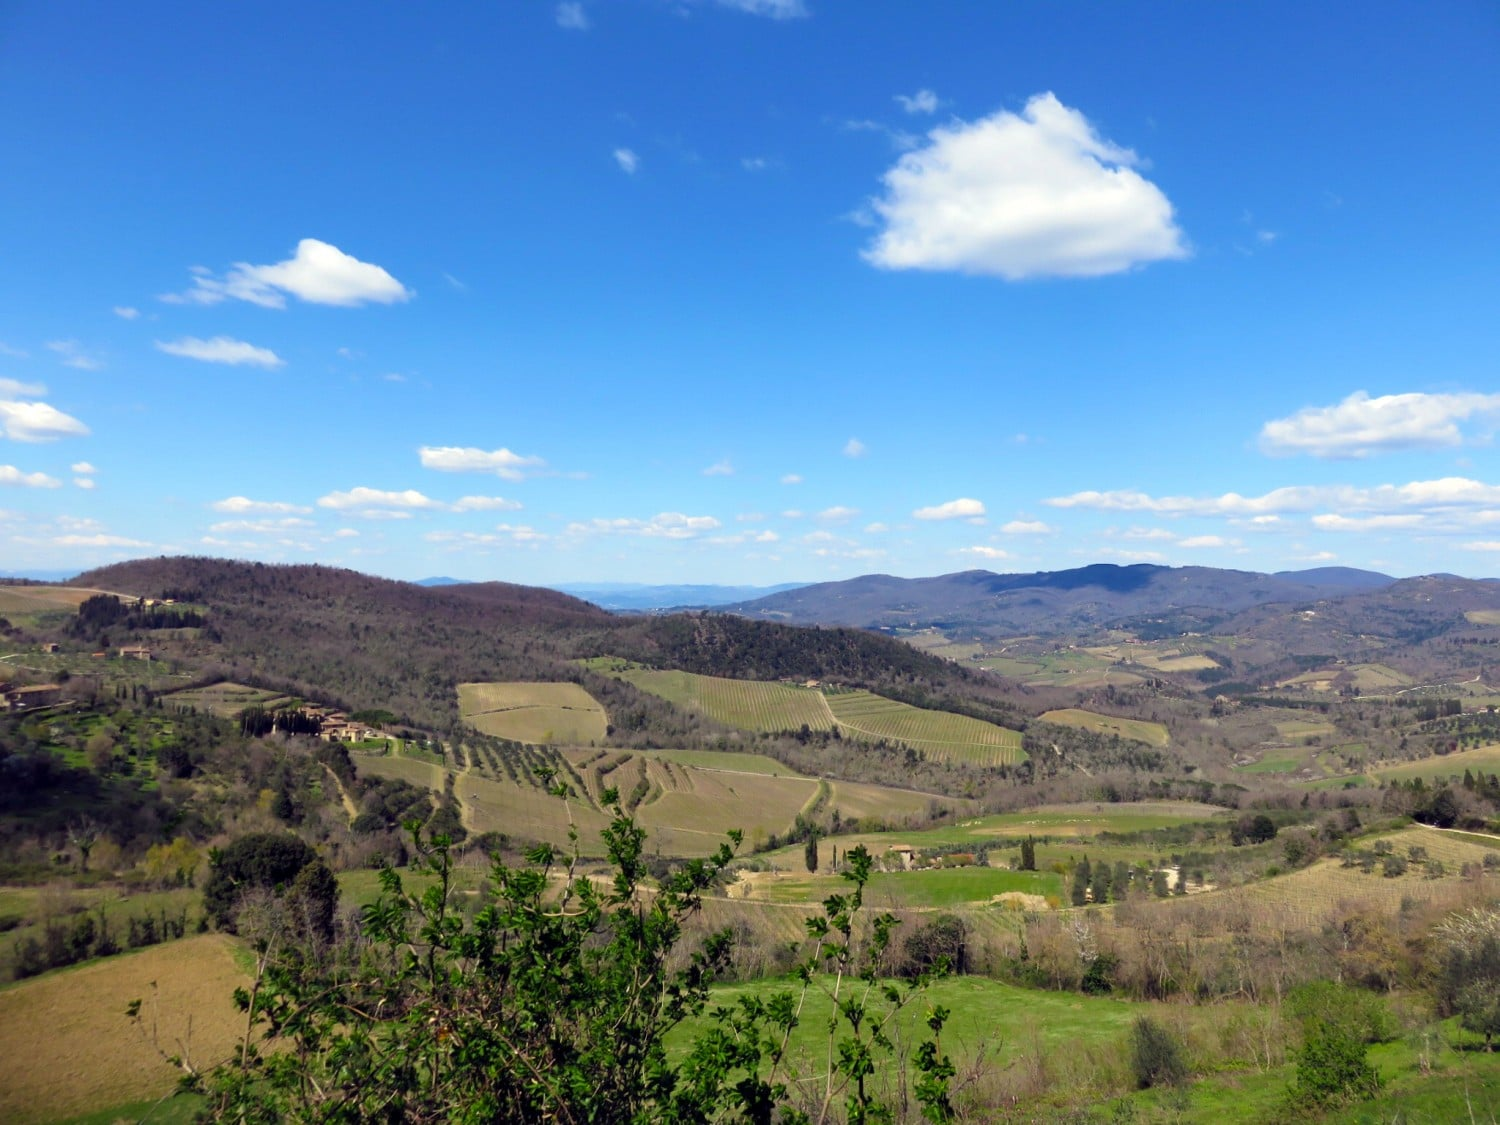 Tuscany Vineyards - Driving through Italy. Read the full article.